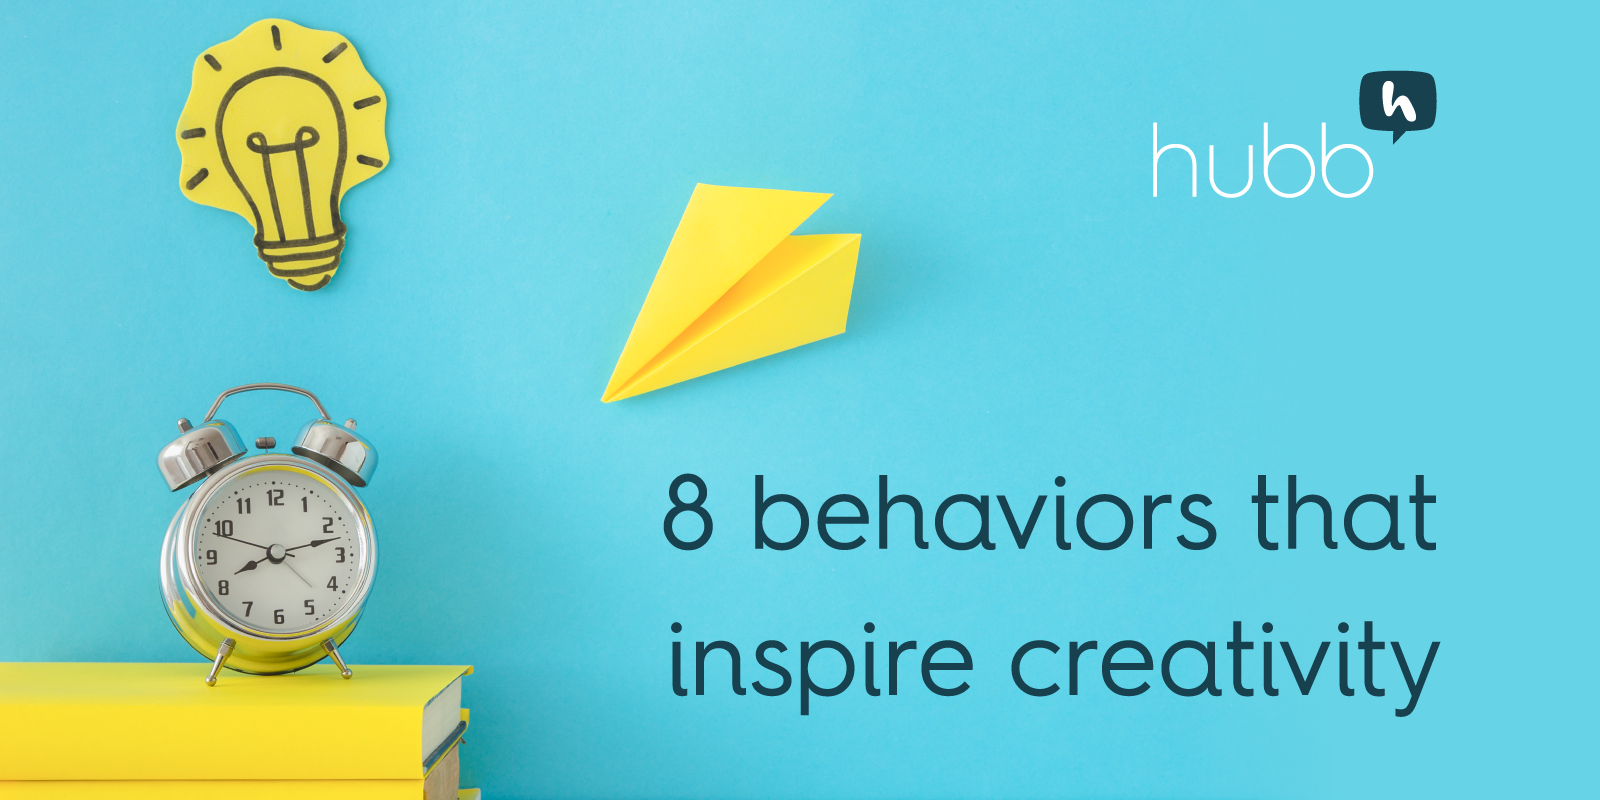 8-behaviors-that-inspire-creativity-Social